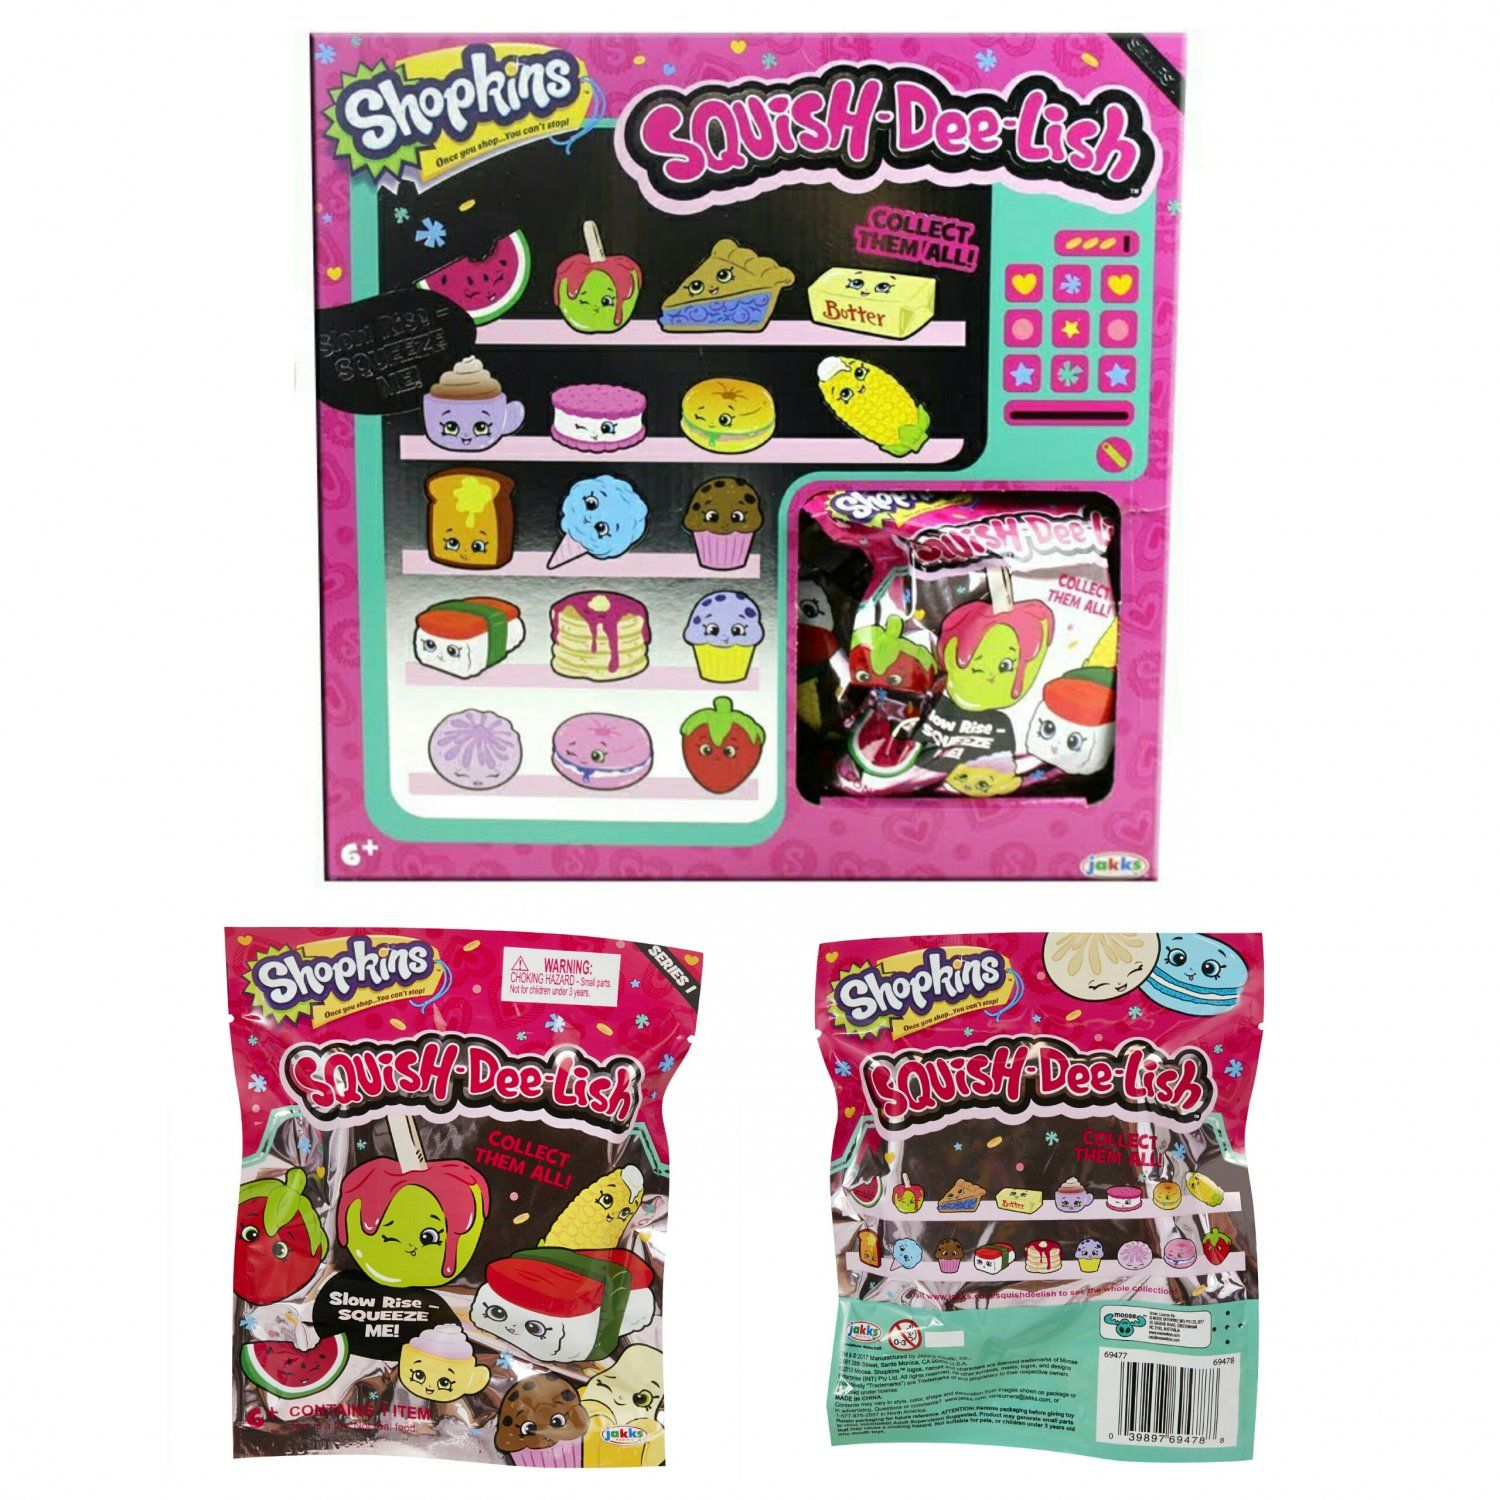 Squish Dee Lish Full Box : Squish-Dee-Lish Shopkins Slow-Rise Squishies Series 1 Blind Pack #69478 (Colors/Styles May Vary ...